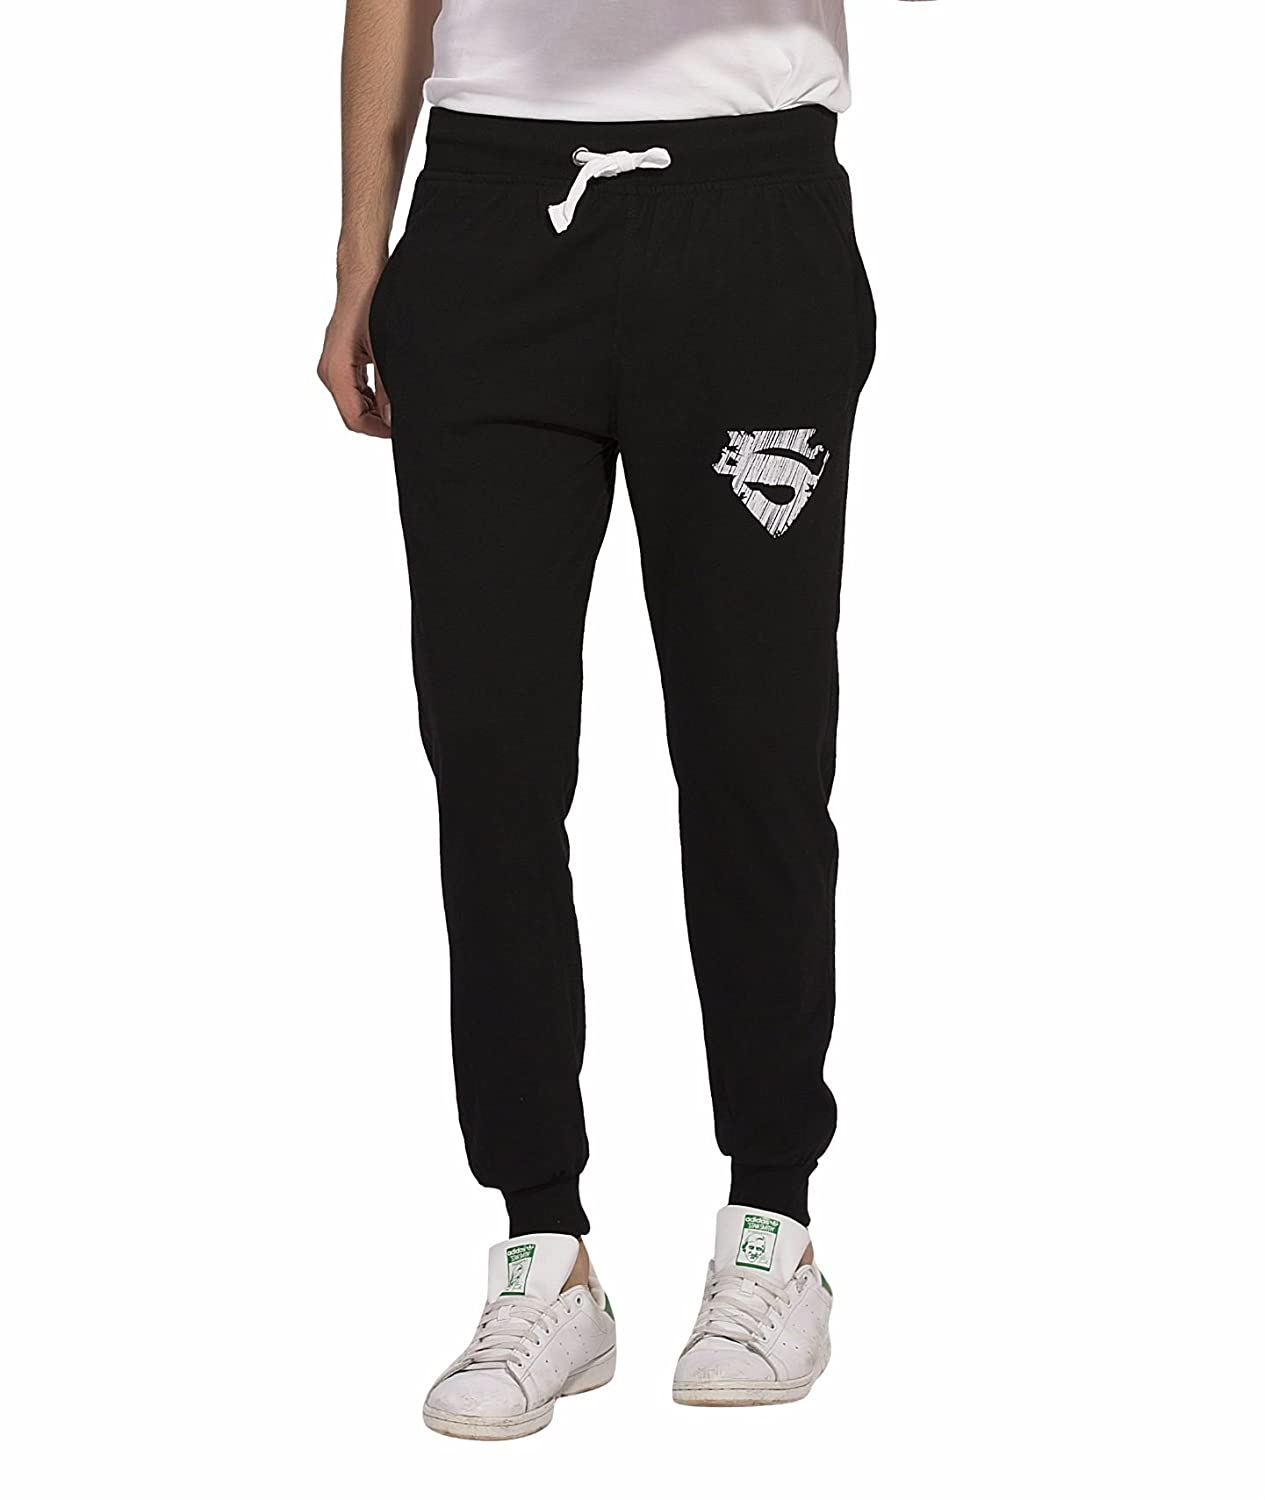 398a96b9a7d6e Alan Jones Clothing Men's Cotton Joggers: Amazon.in: Clothing & Accessories